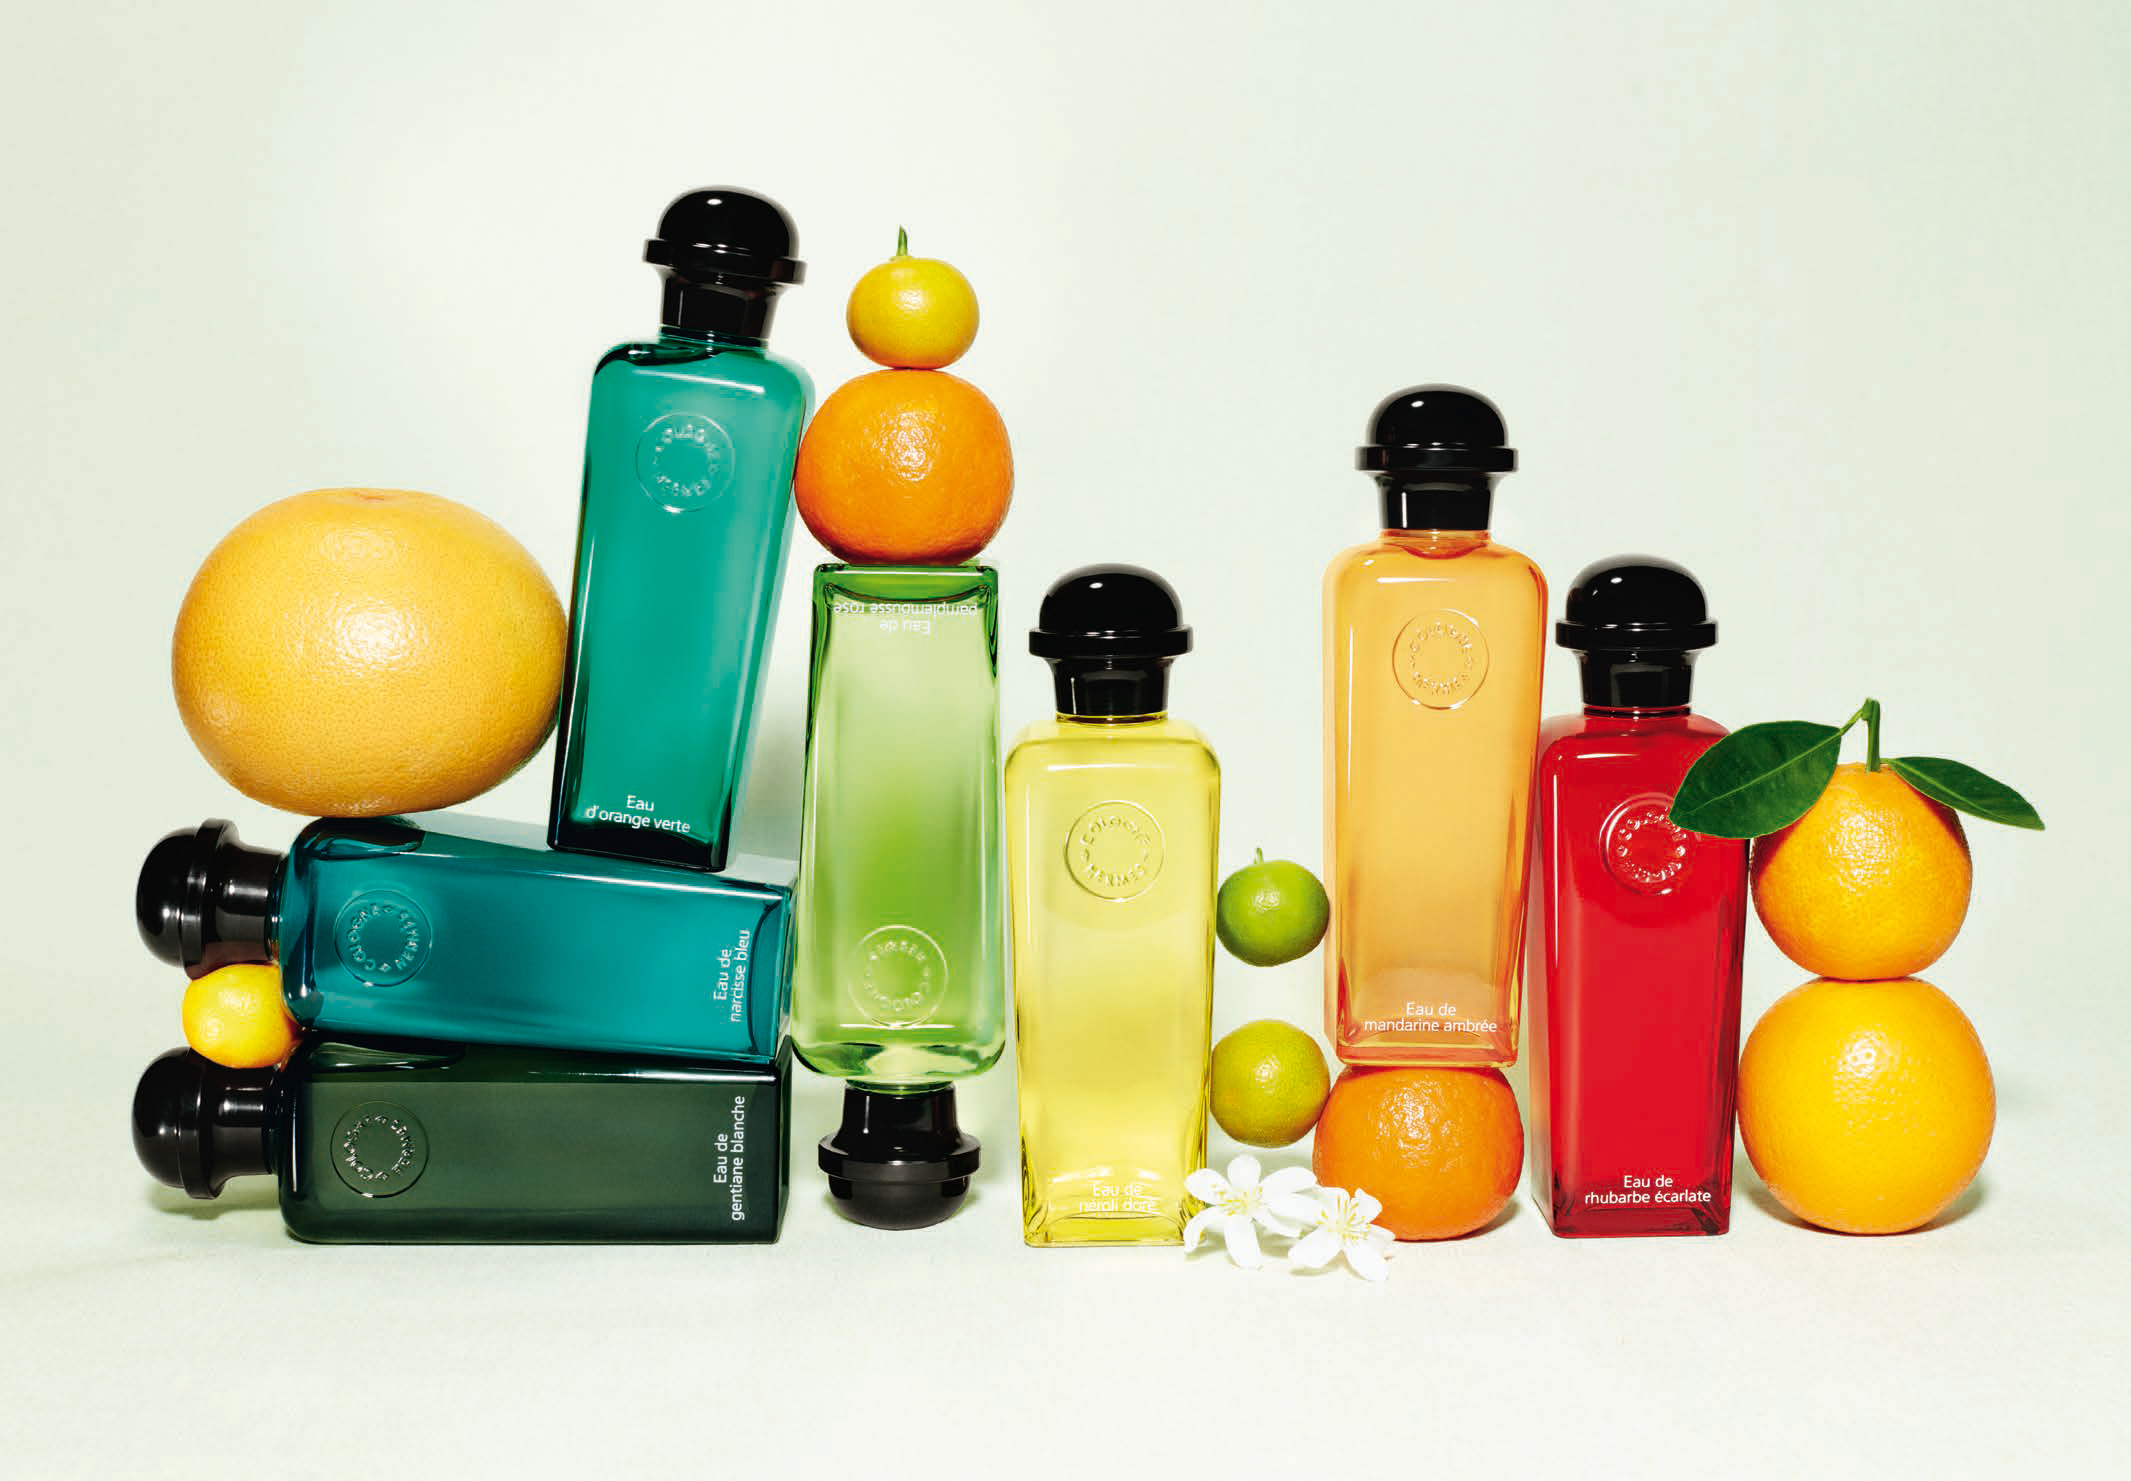 Hermes Colognes 2016